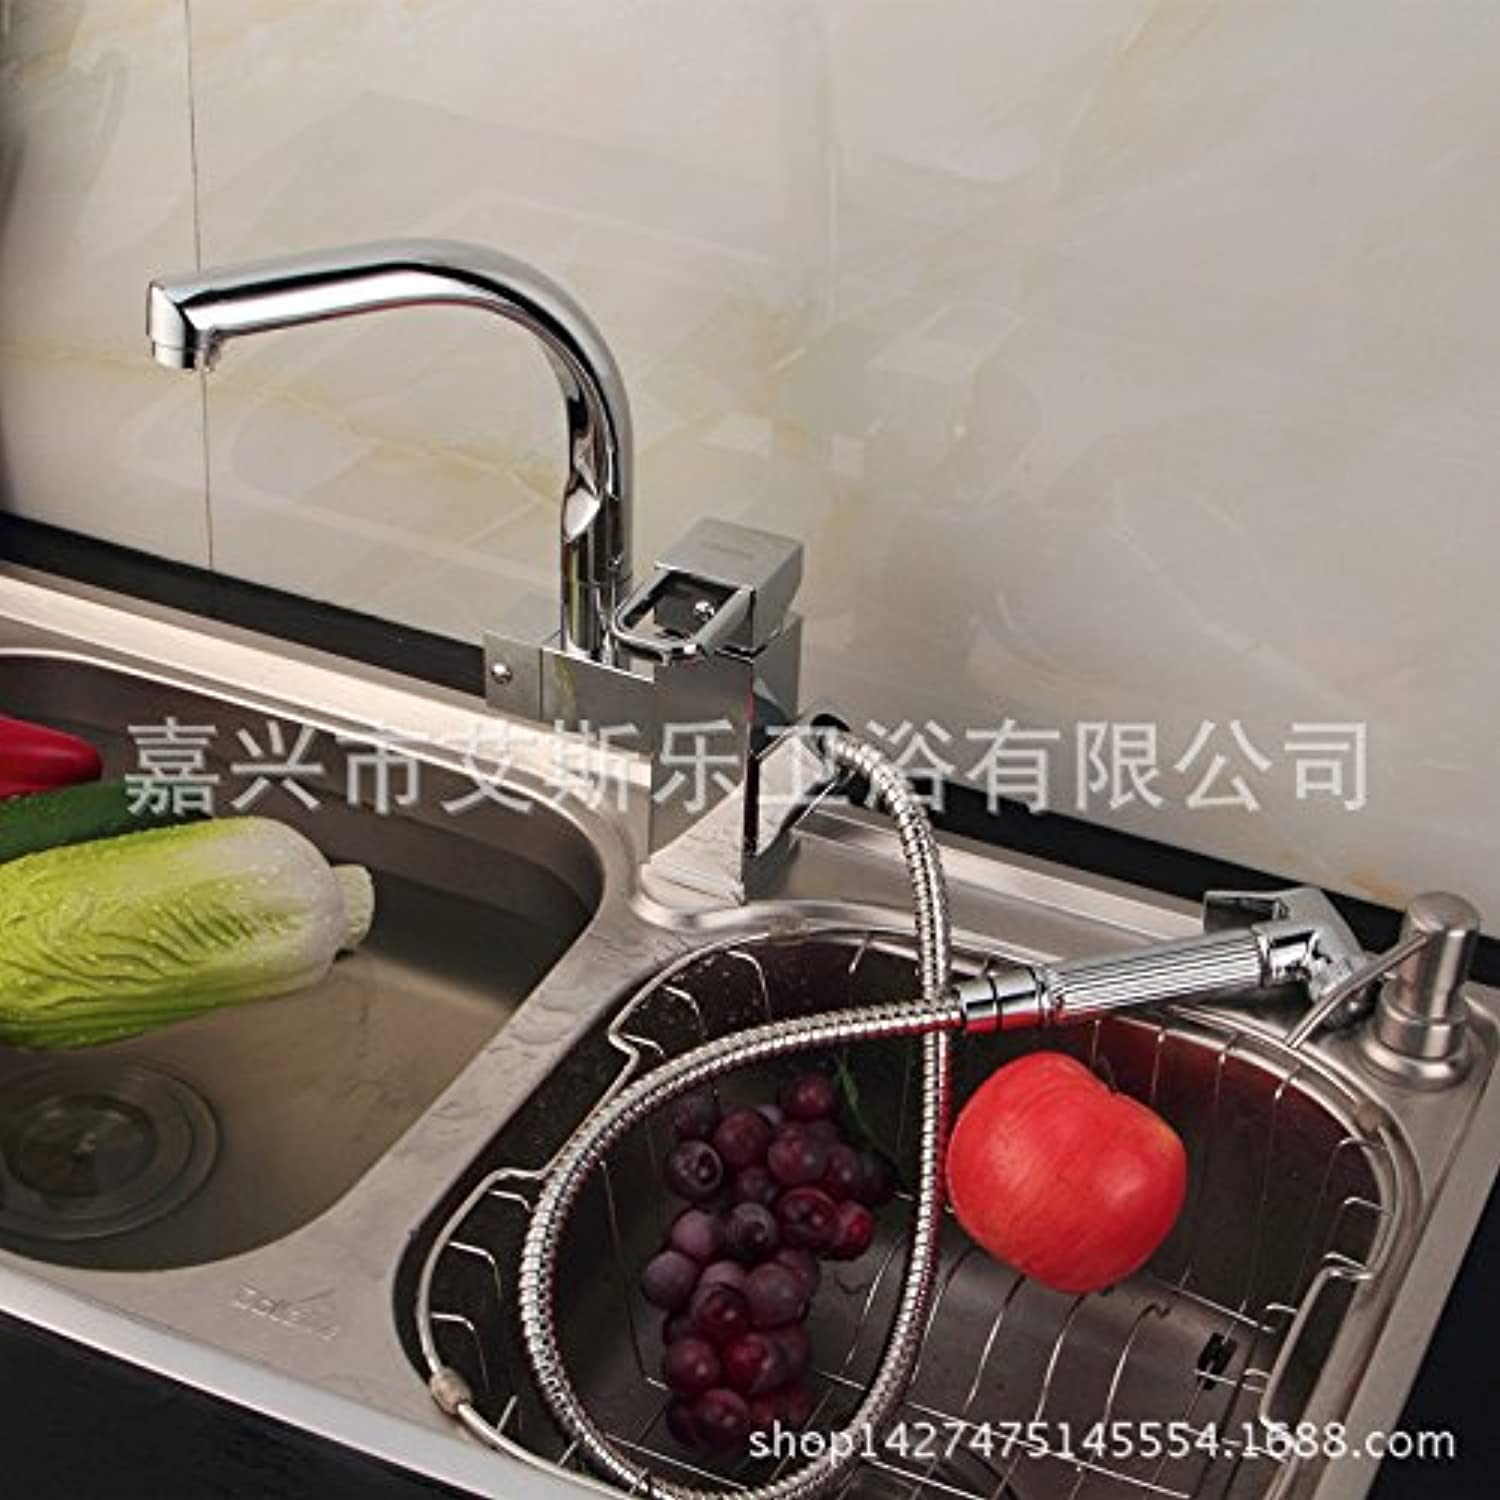 Commercial Single Lever Pull Down Kitchen Sink Faucet Brass Constructed Polished Kitchen Faucet Foreign Trade Hot Pull Faucet Copper Kitchen Faucet Hot and Cold Dishes A Generation